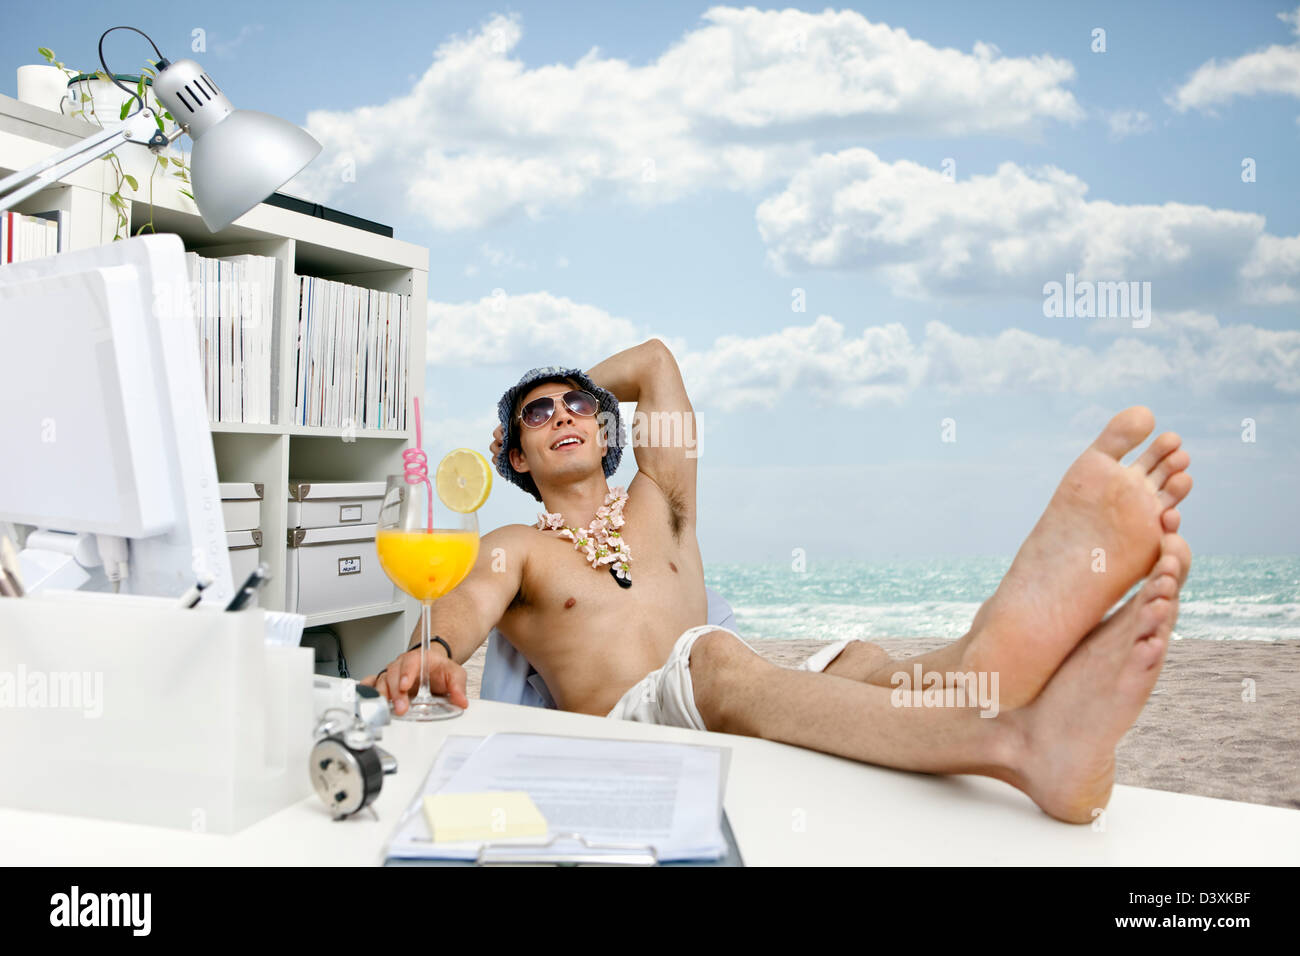 young man at work daydreaming about beach, cocktails, and easy life - Stock Image